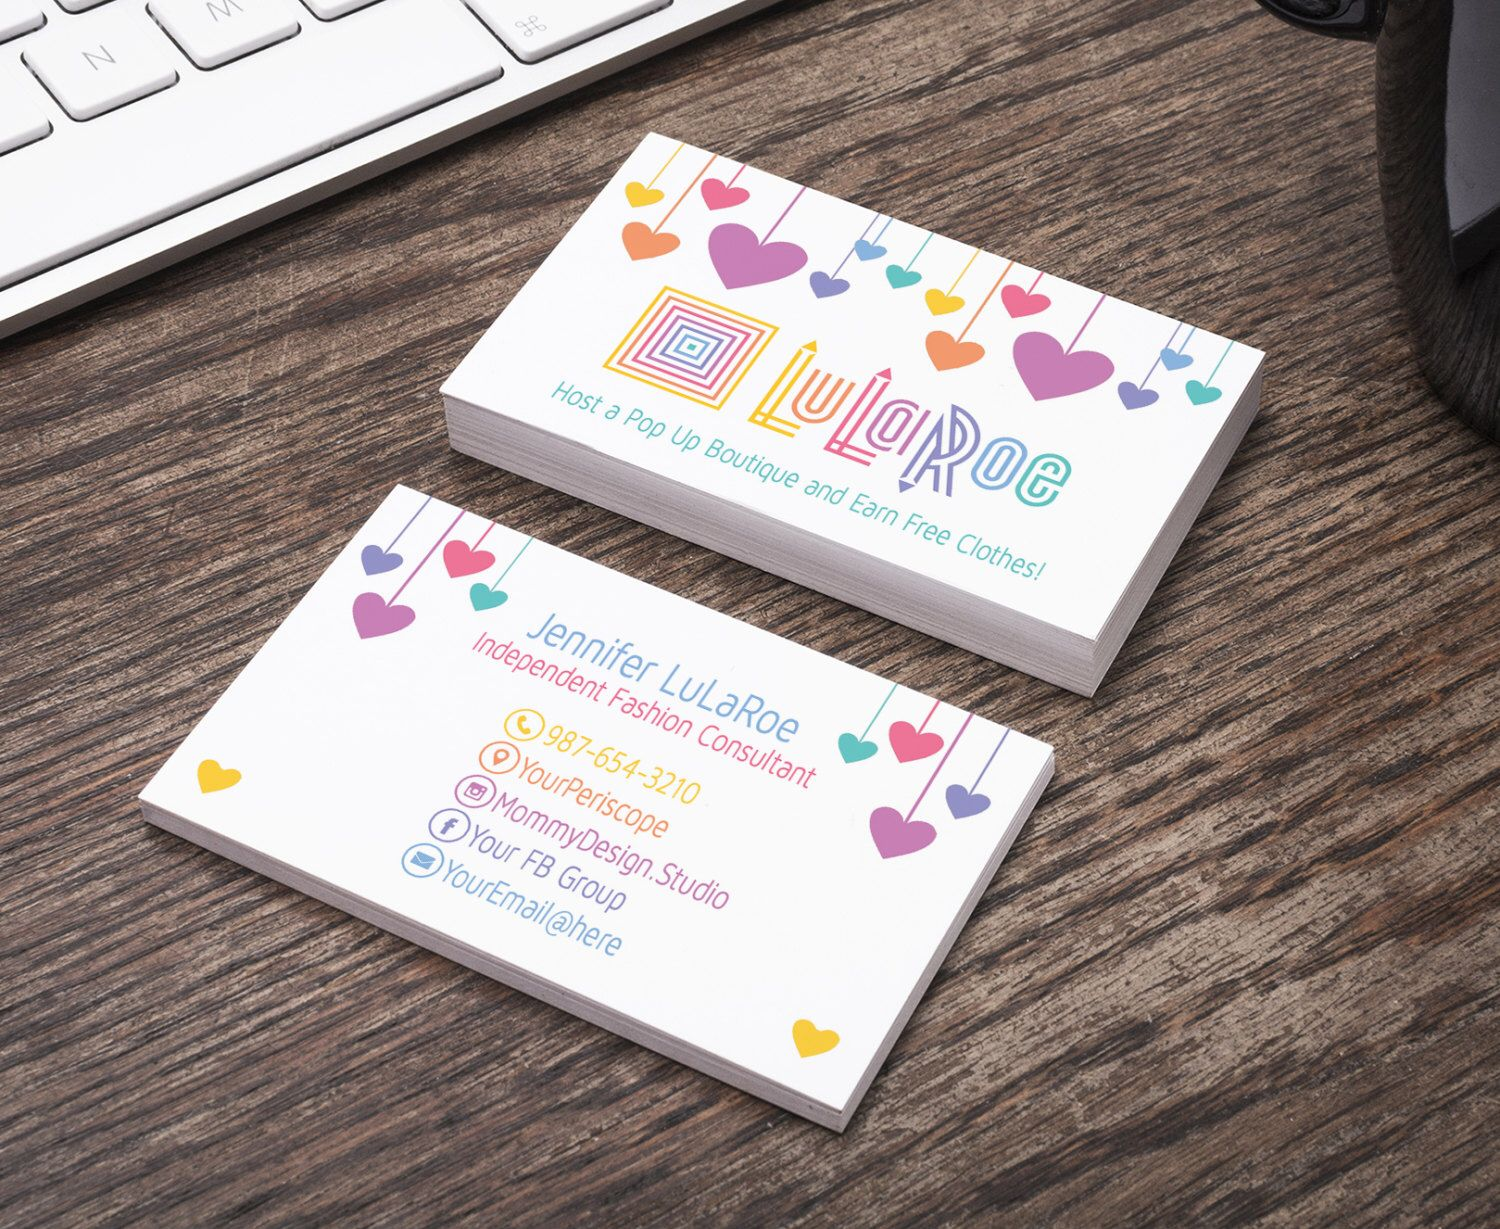 Hearts Business Card - Home Office Approved Colors/Fonts - Bundles ...